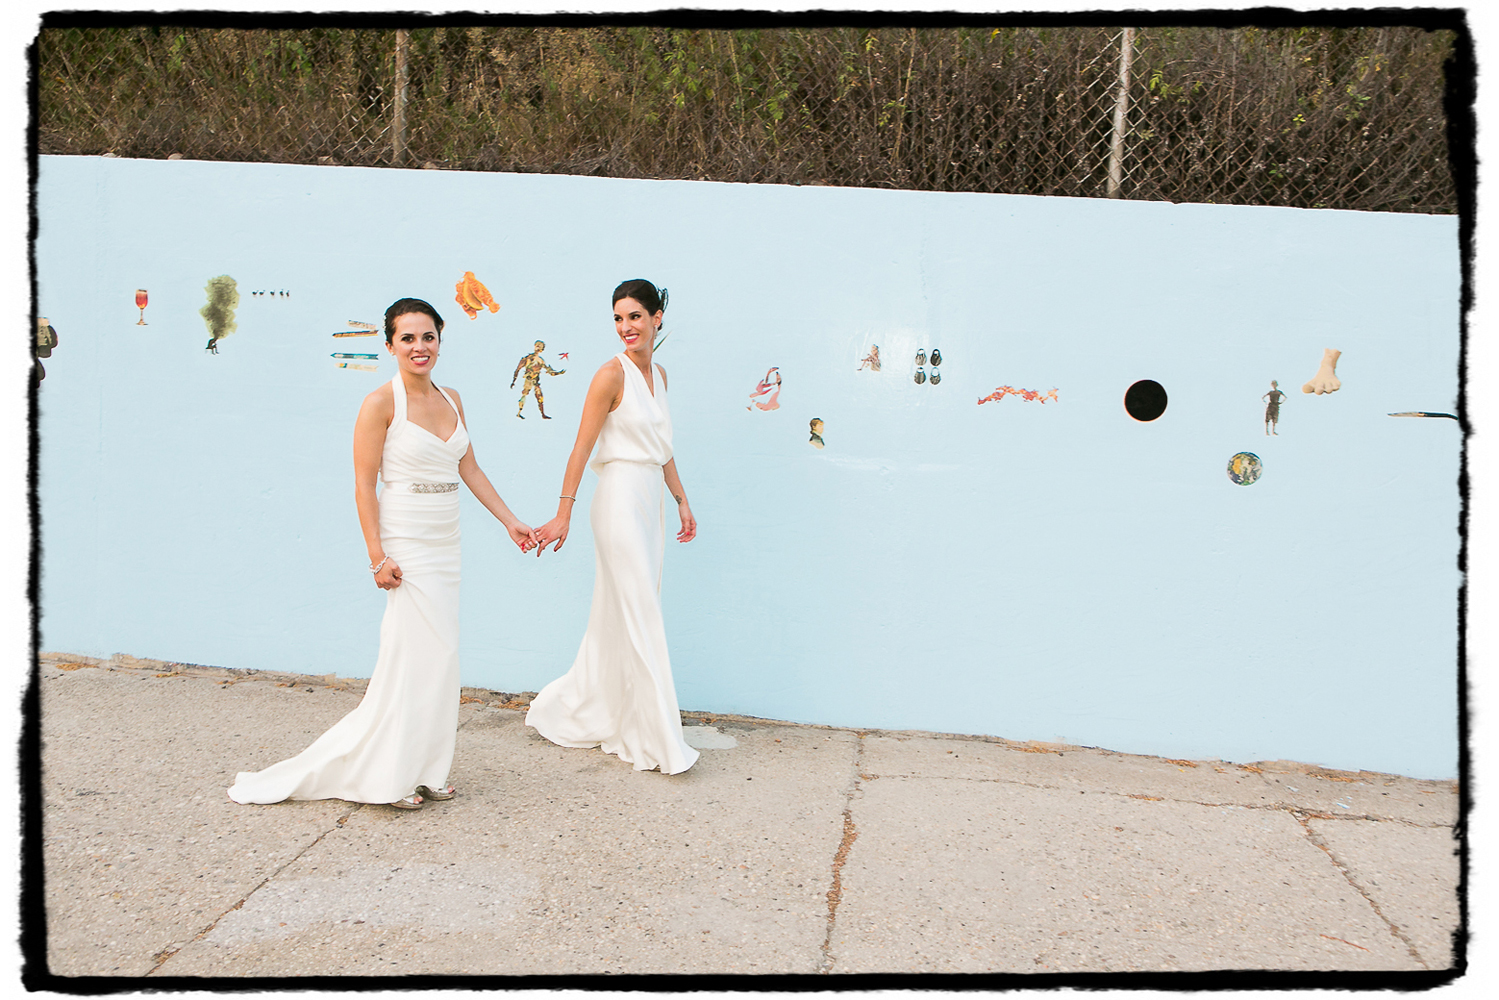 Lara and Nicole were married at The Green Building in Brooklyn and on that very day an artist was painting this particular mural behind them.  It's gone now but will live on in their wedding photographs.